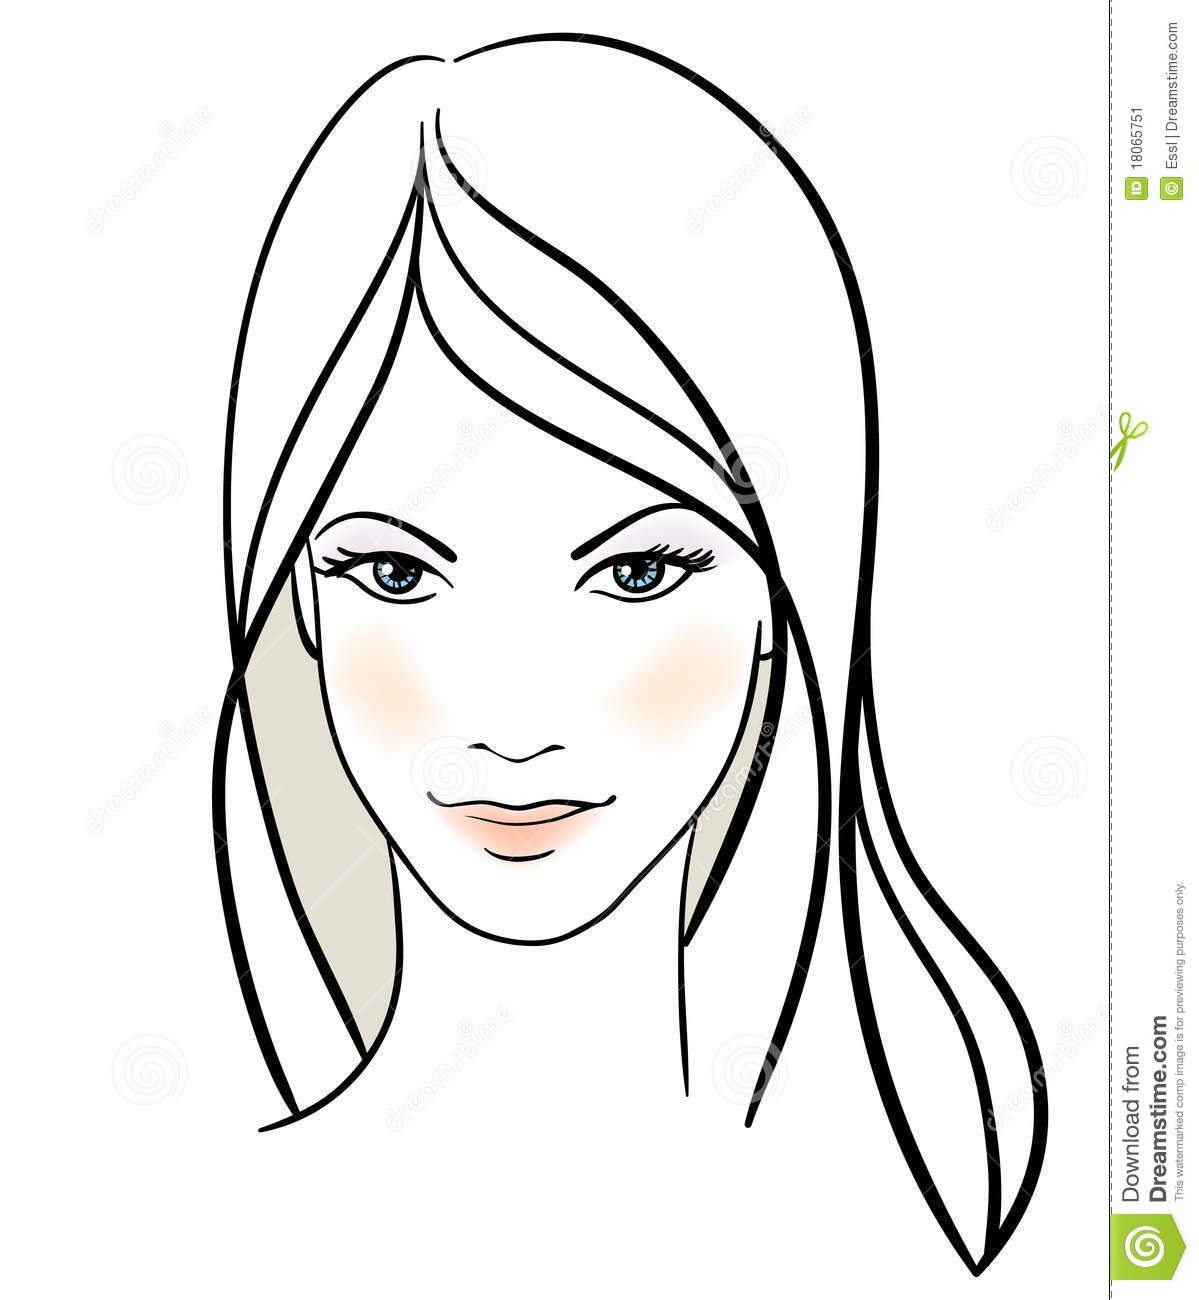 girls face coloring pages - photo#14